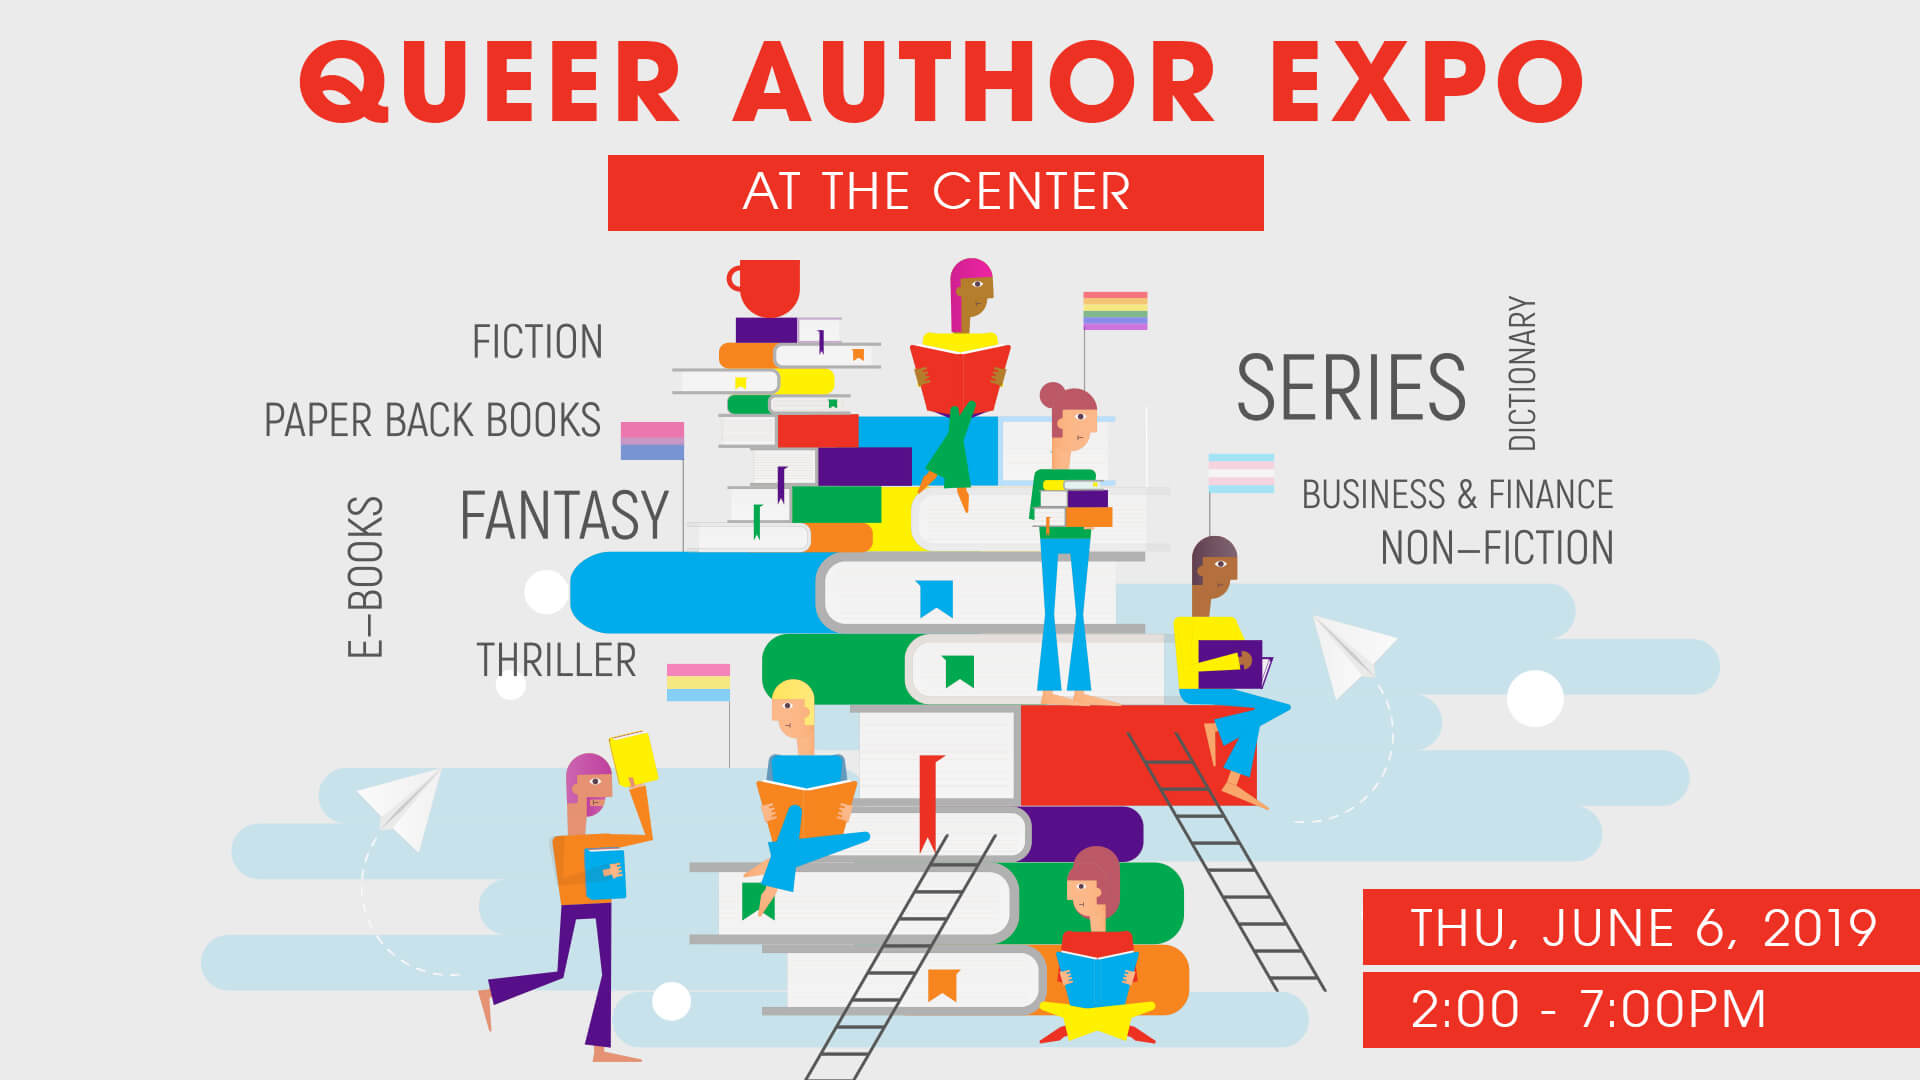 Queer Author Expo 2019